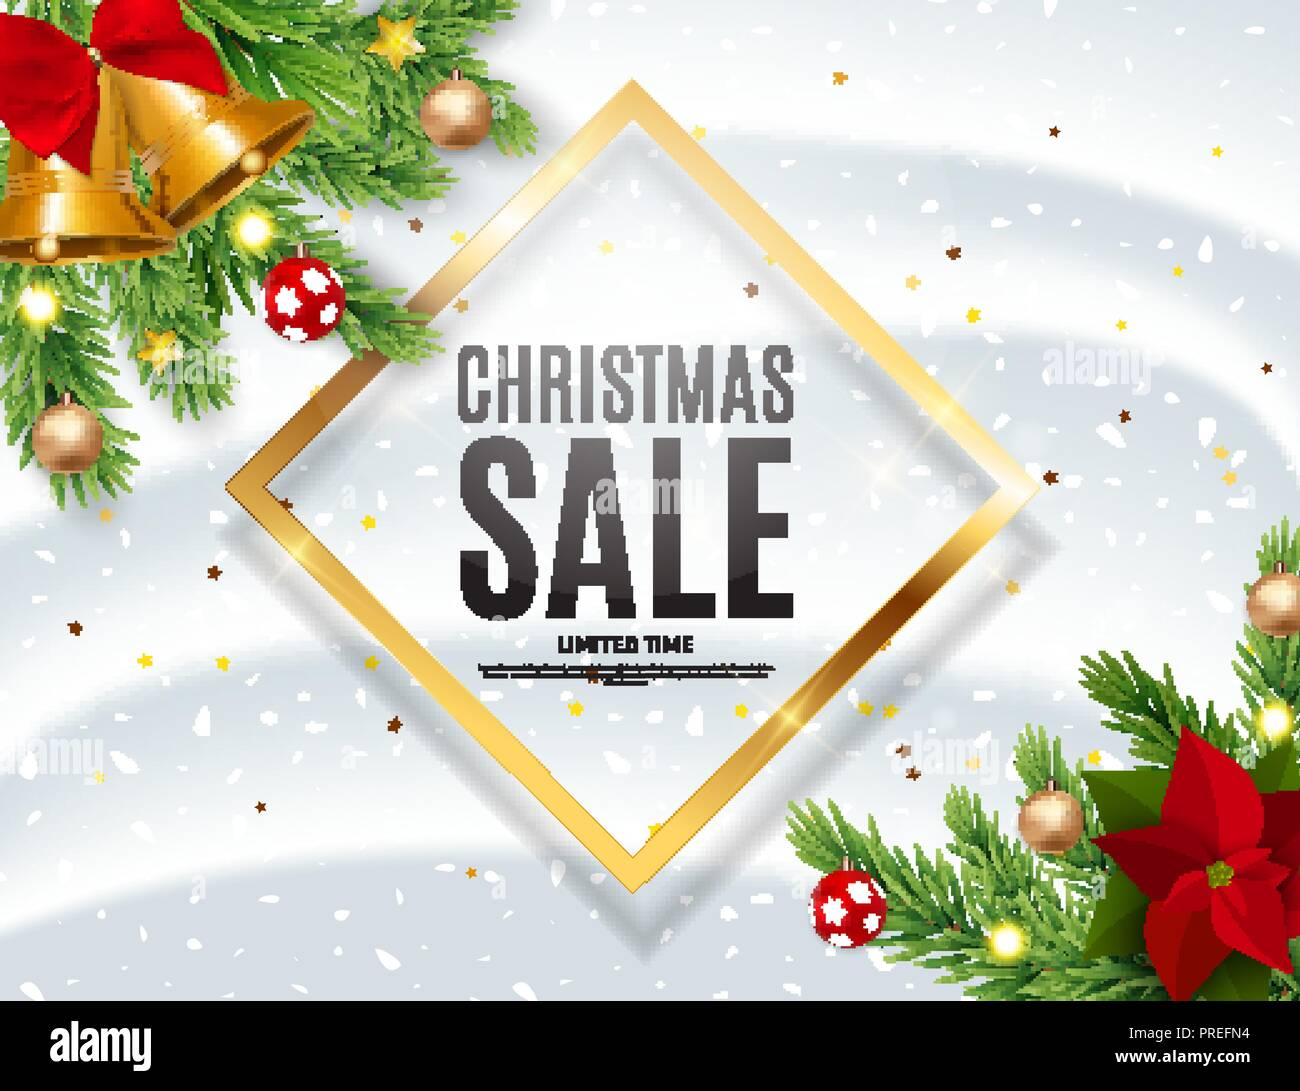 New Market Christmas Market Stock Vector Images - Alamy